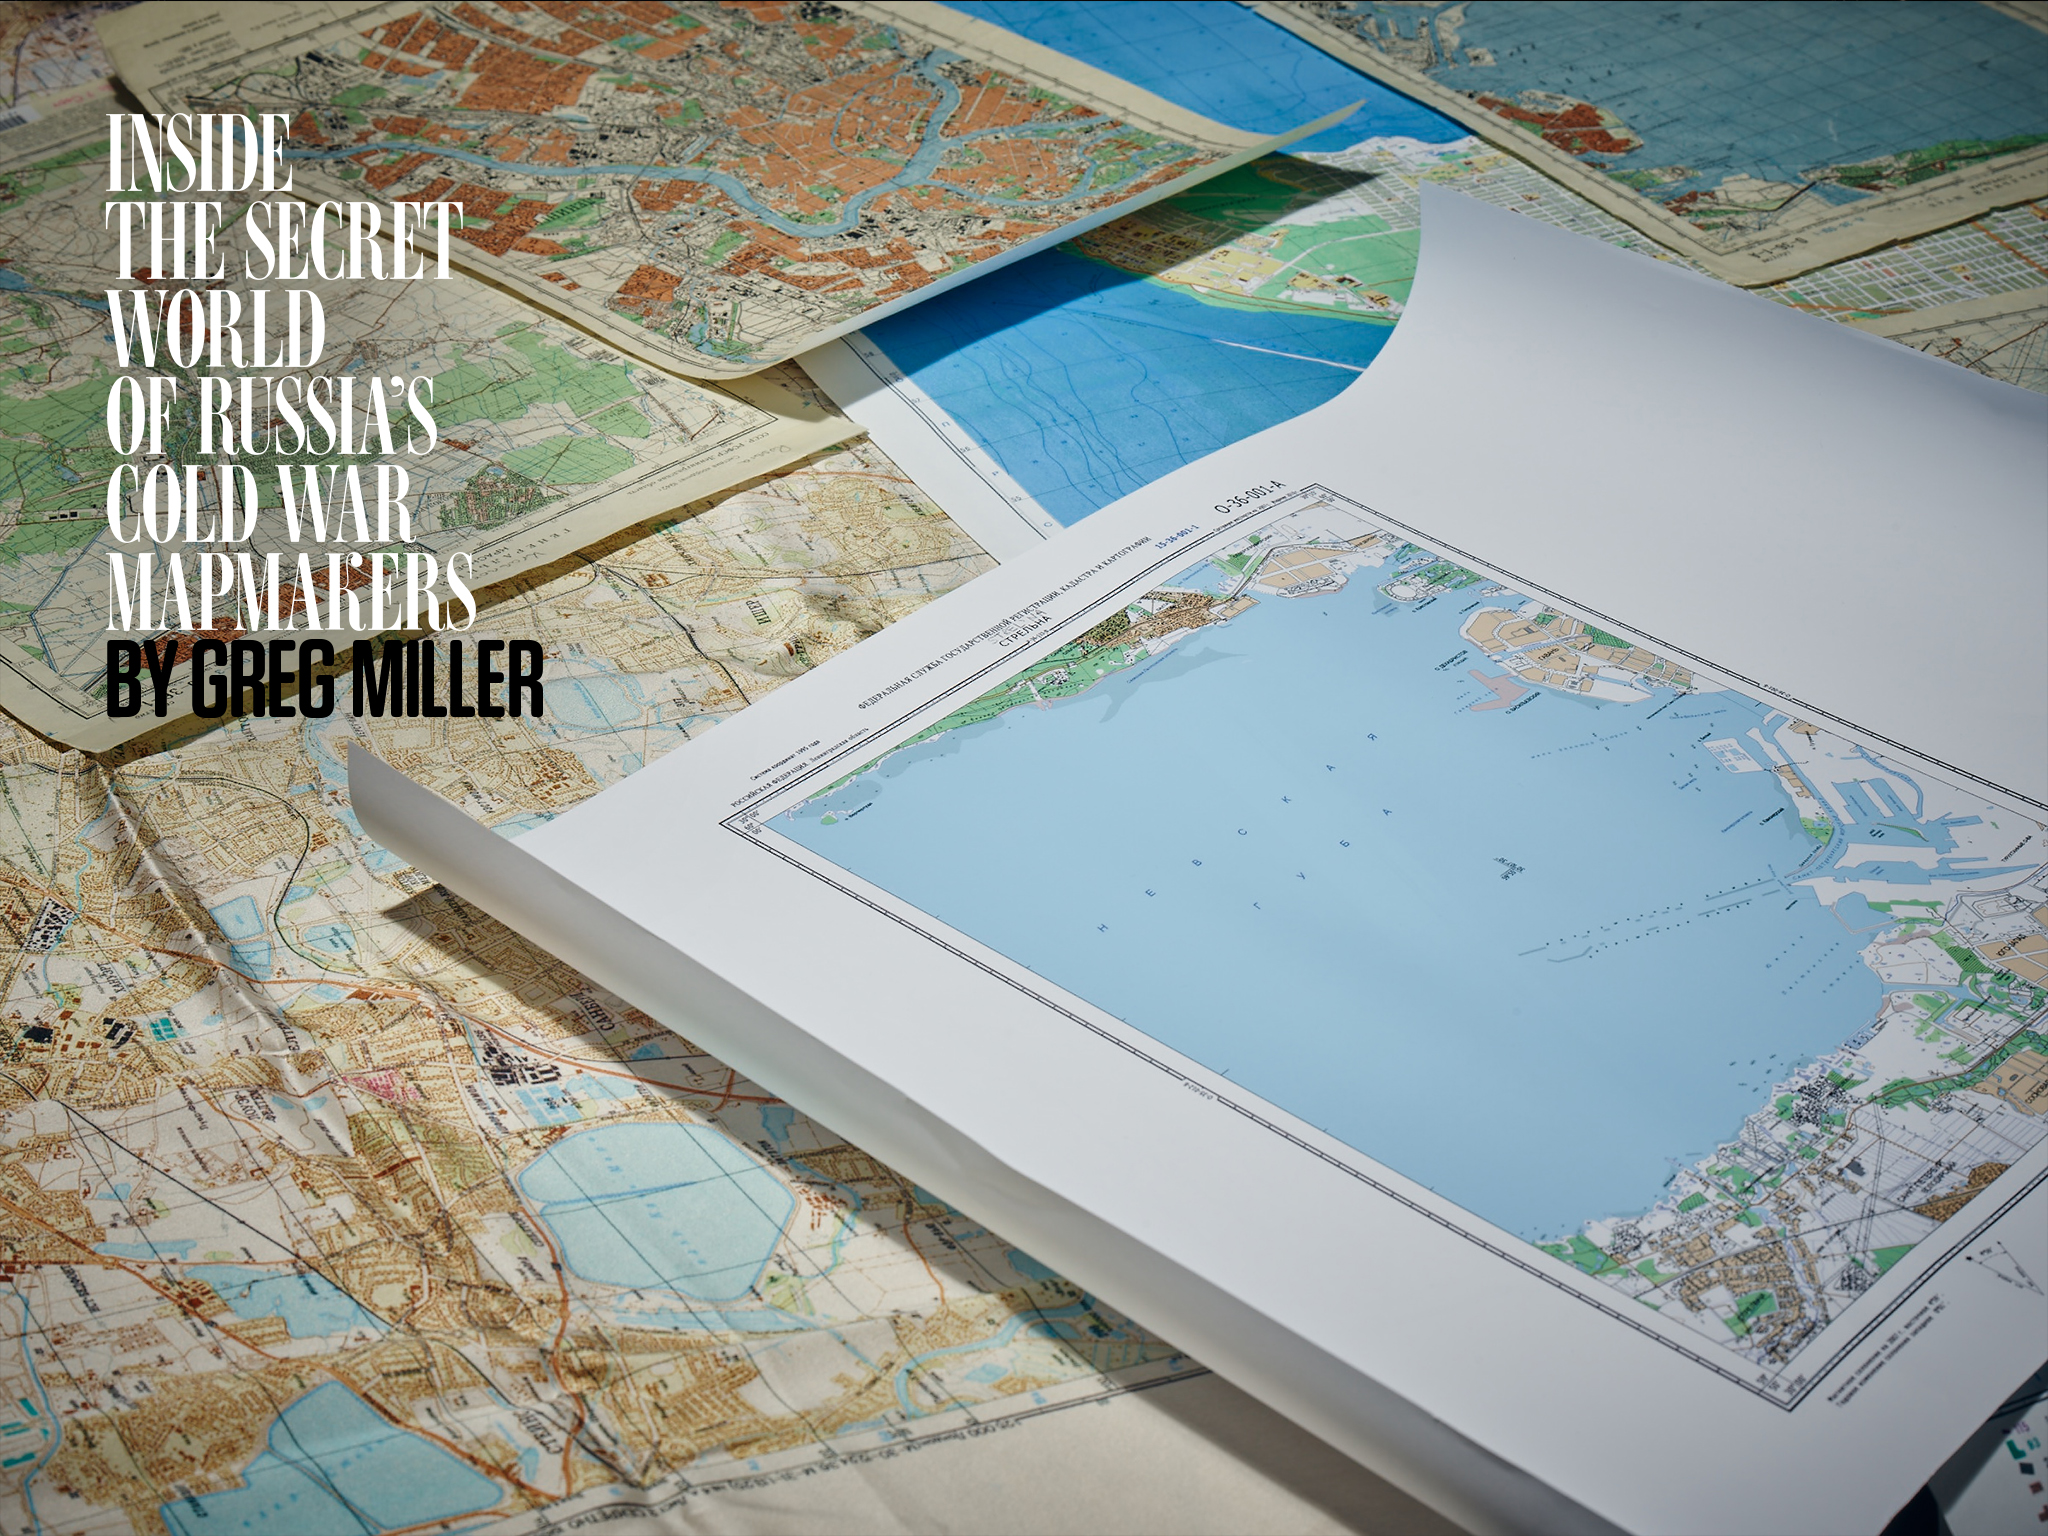 Wallpaper Falling Off Wall Inside The Secret World Of Russia S Cold War Mapmakers Wired